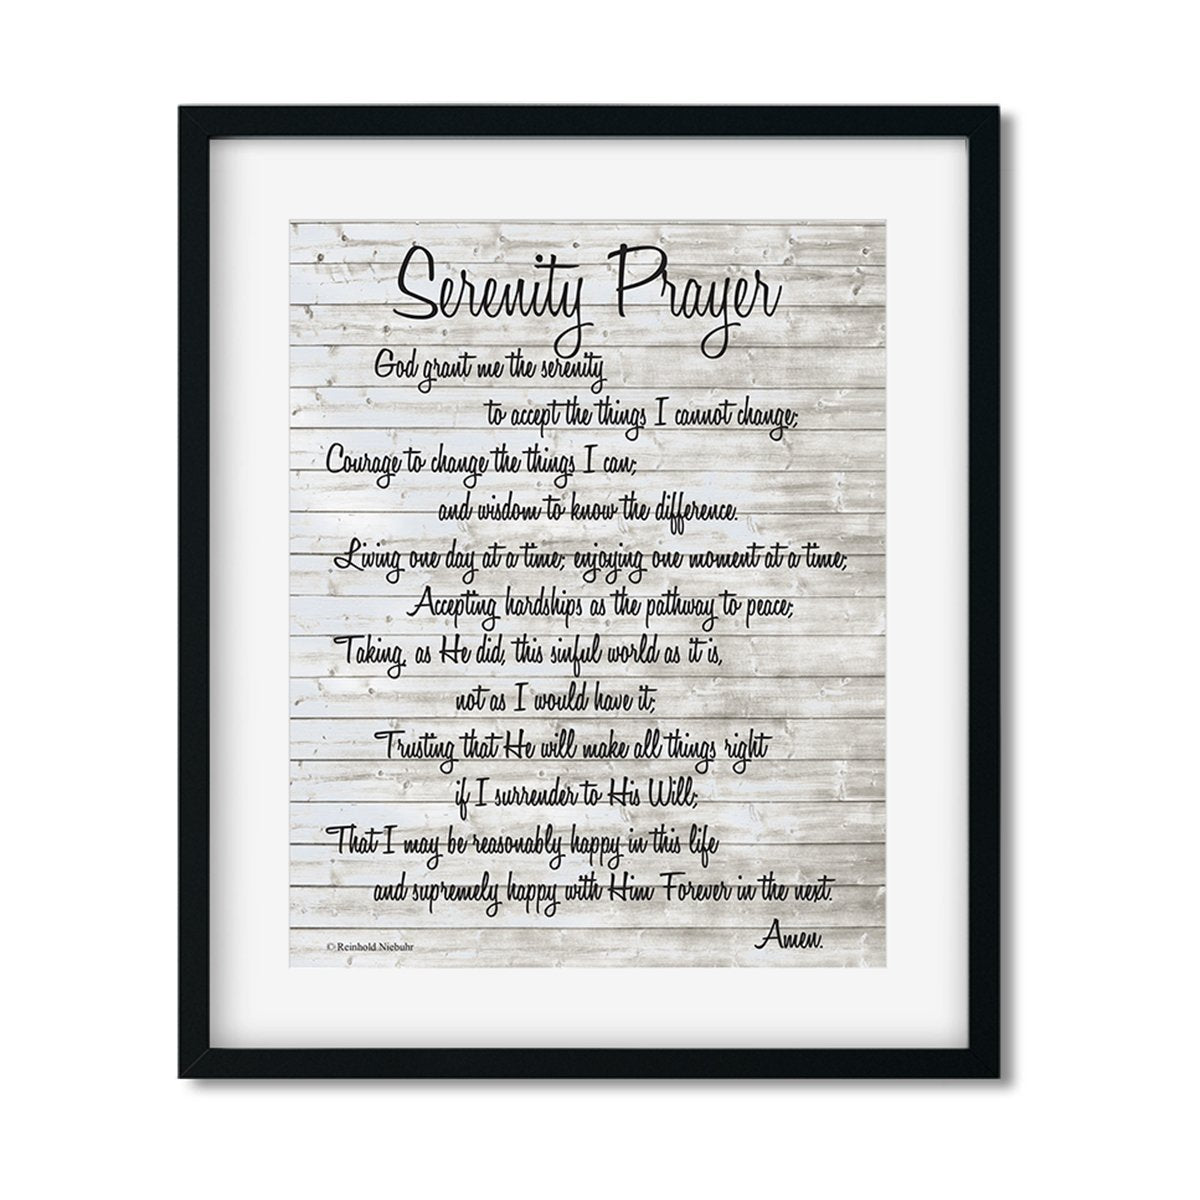 Serenity Prayer - Art Print - Netties Expressions